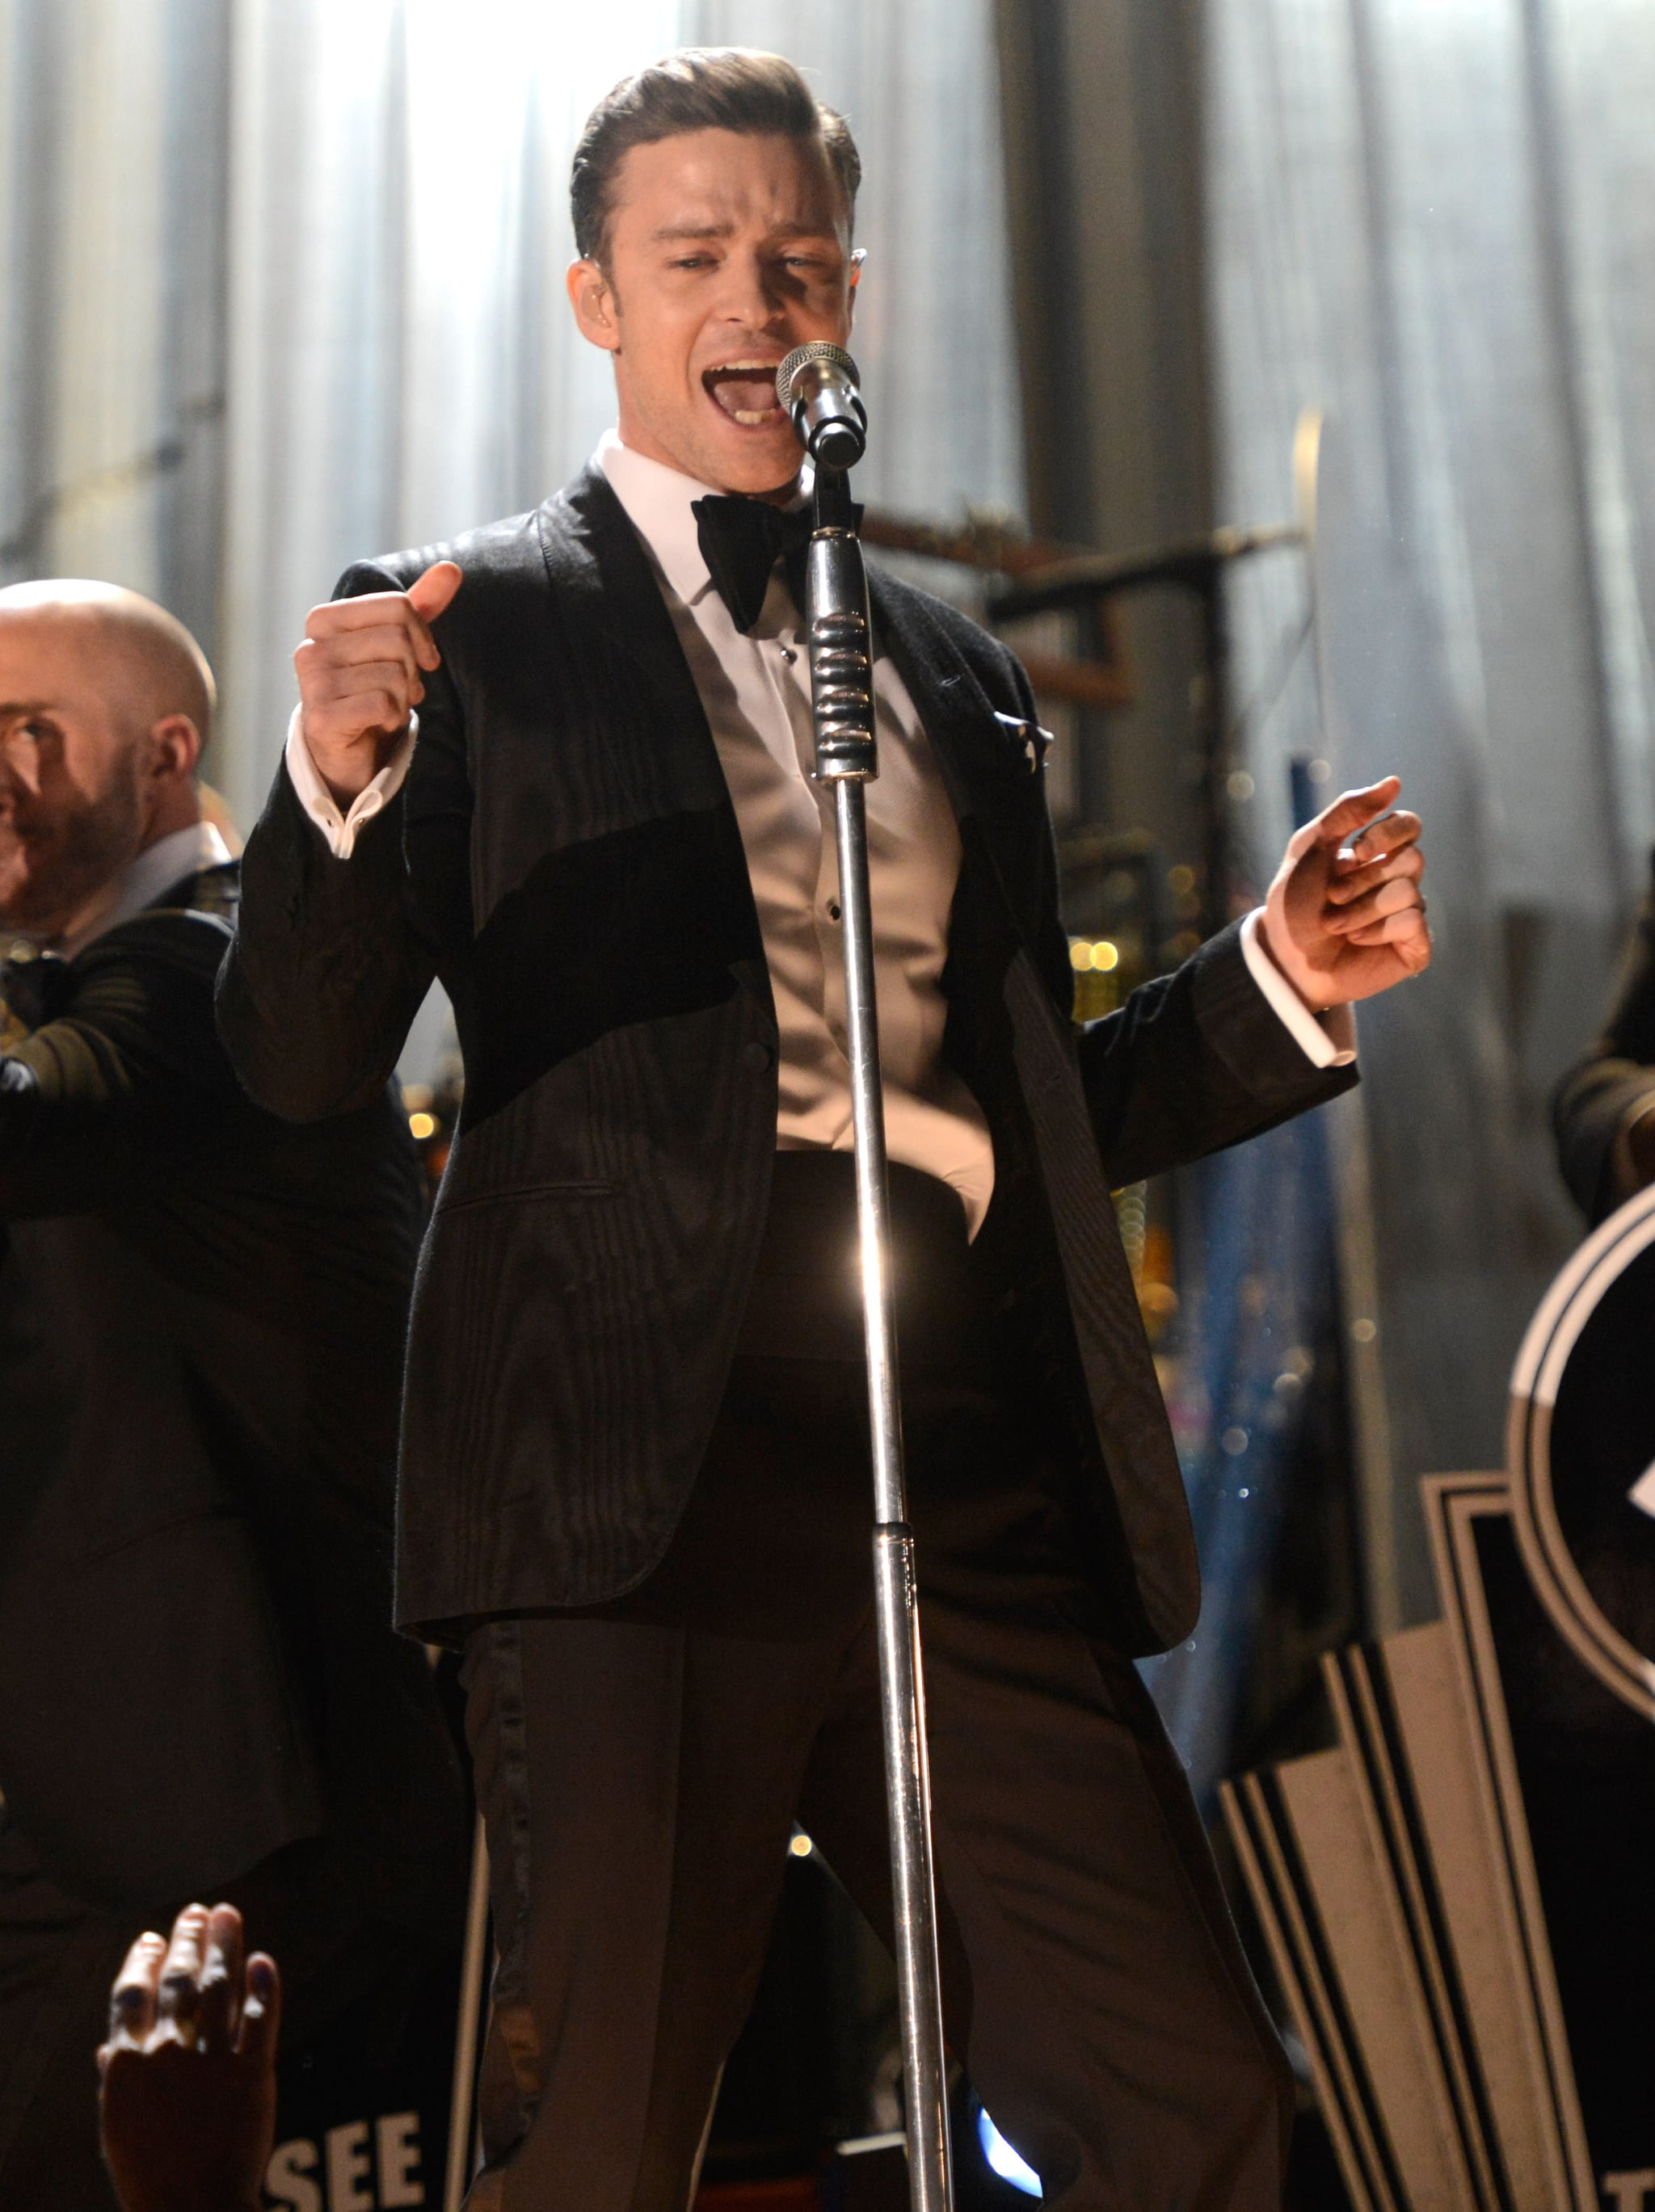 Justin Timberlake danced as he sang into the microphone Sunday night at the 2013 Grammys.